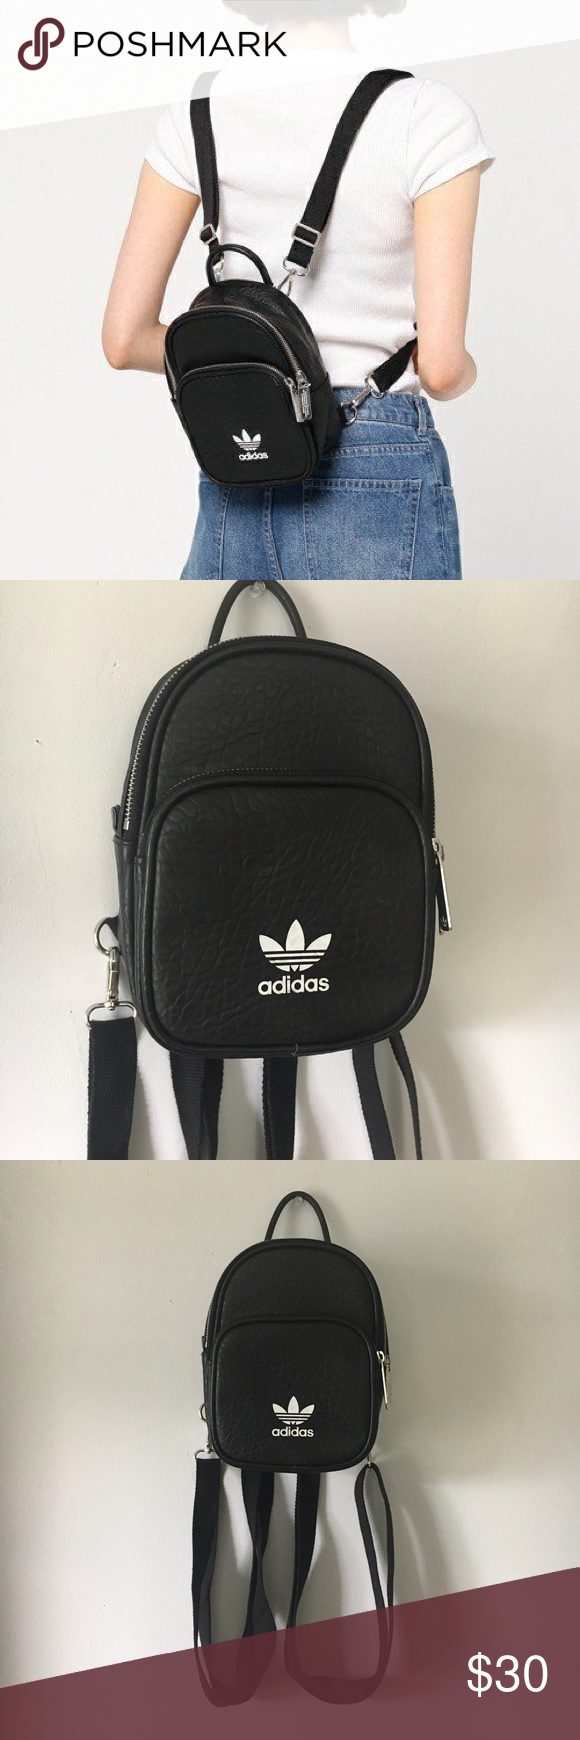 Mini Adidas Faux Leather Backpack Authentic Adidas vegan leather backpack  with adjustable straps. White makers f2508a6fdd7b